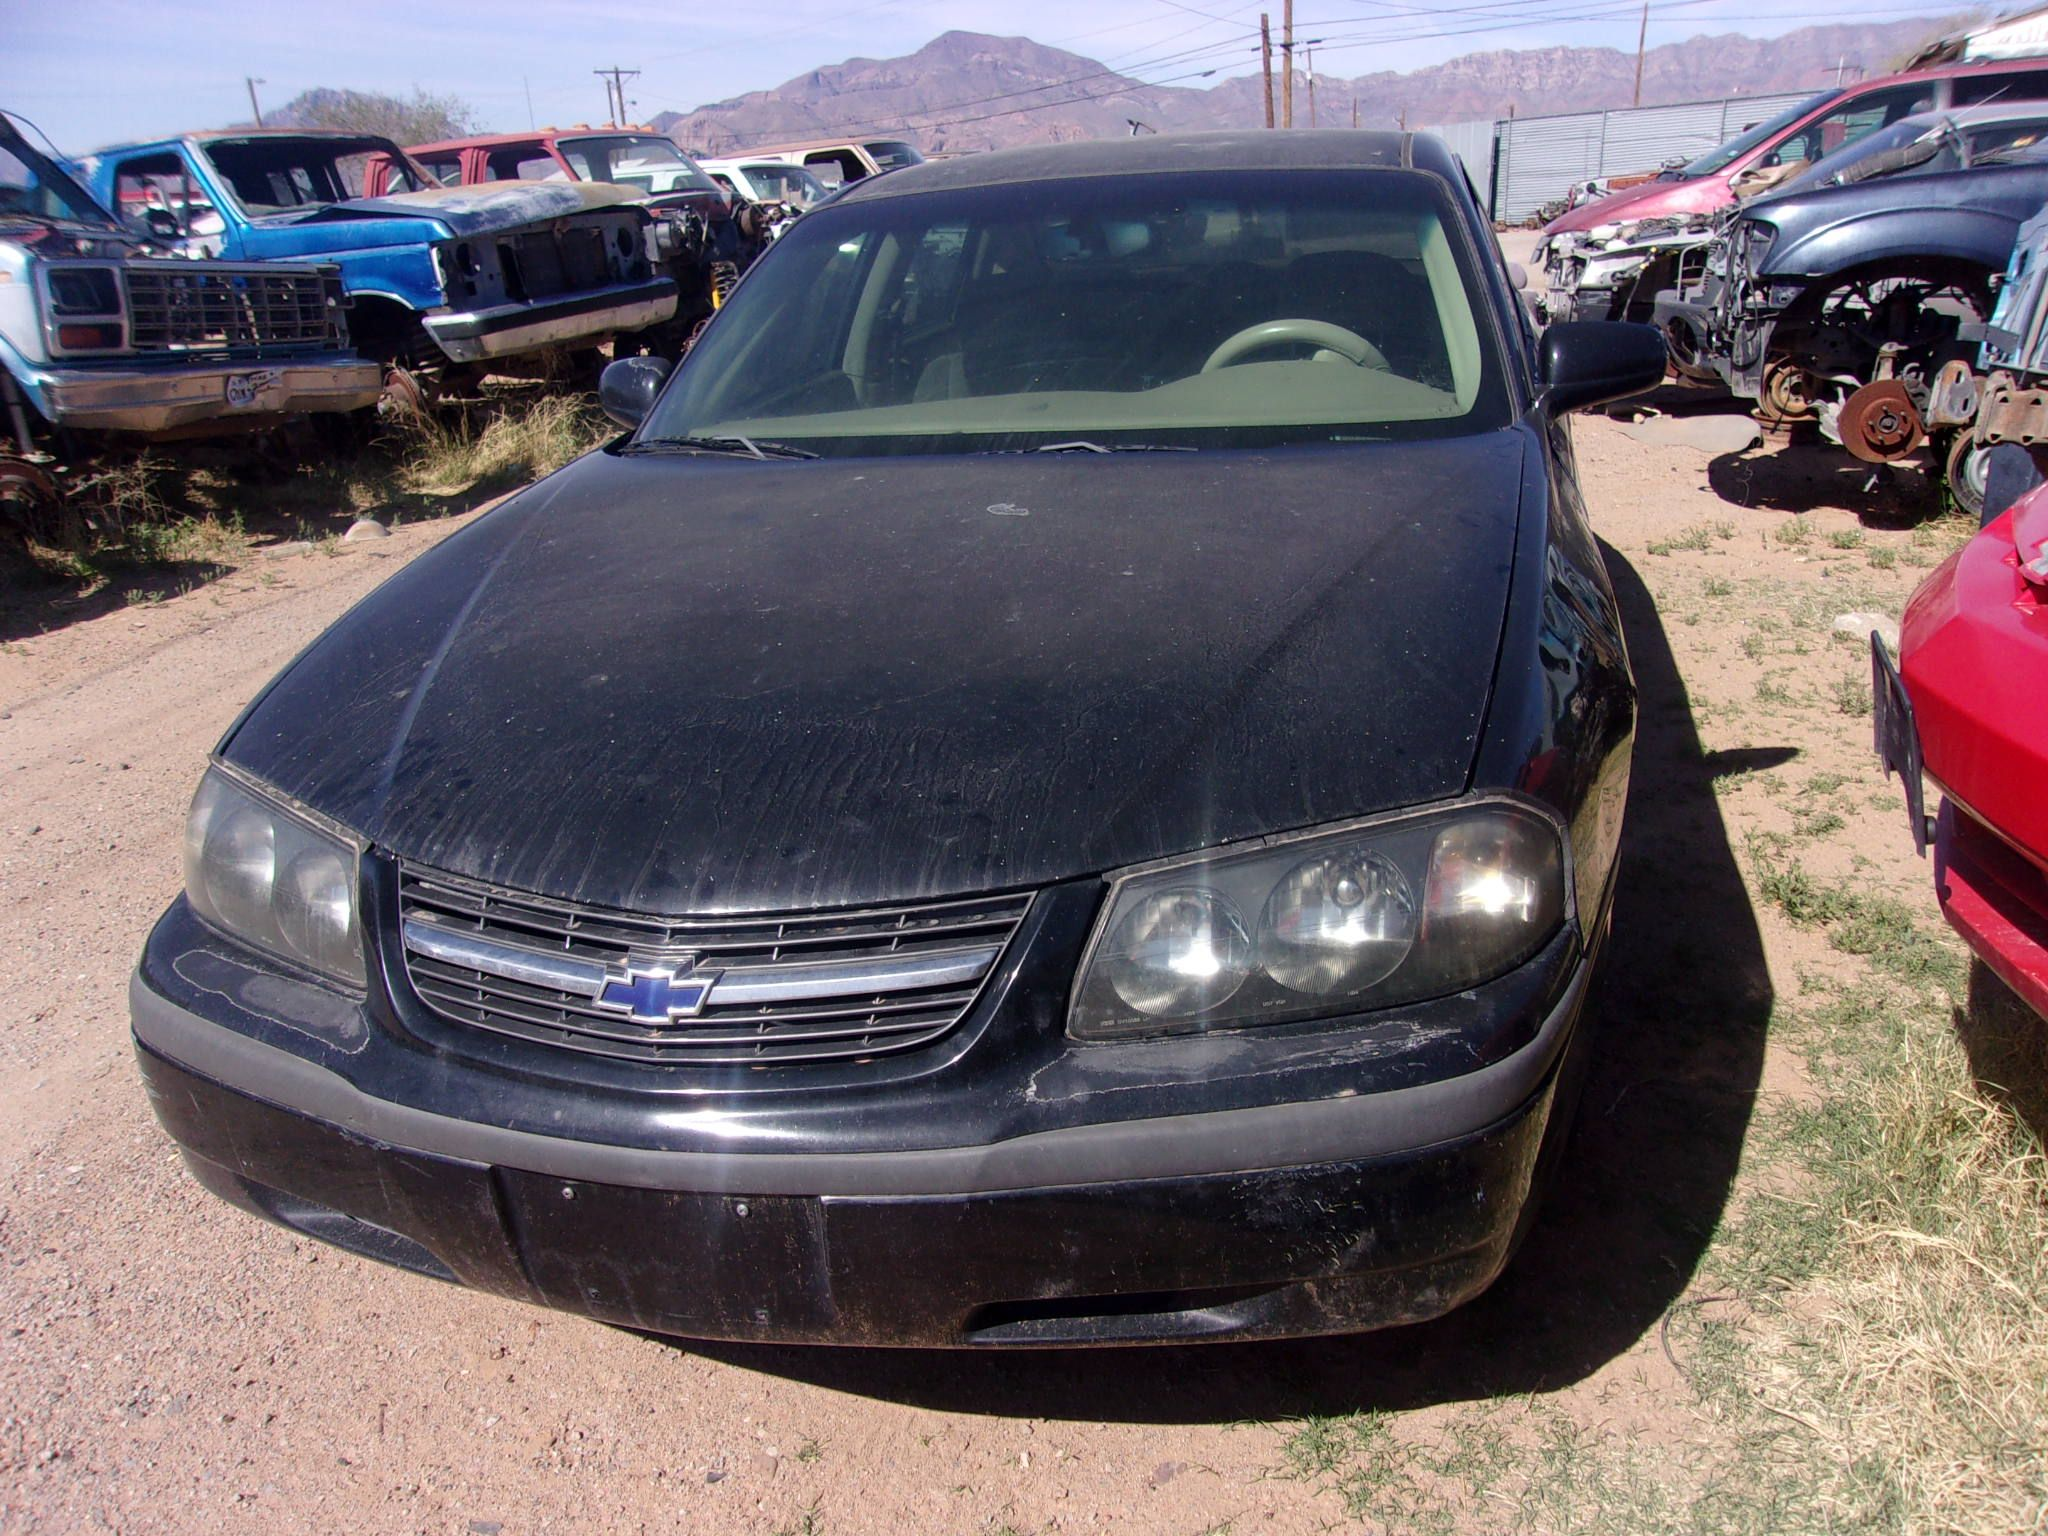 Up For Sale Is A Used Auto Transmission This Transmission Is In Good Working Condition It Is For A 3 4 L V6 Engine If You Have Any Qu Chevrolet Impala Impala